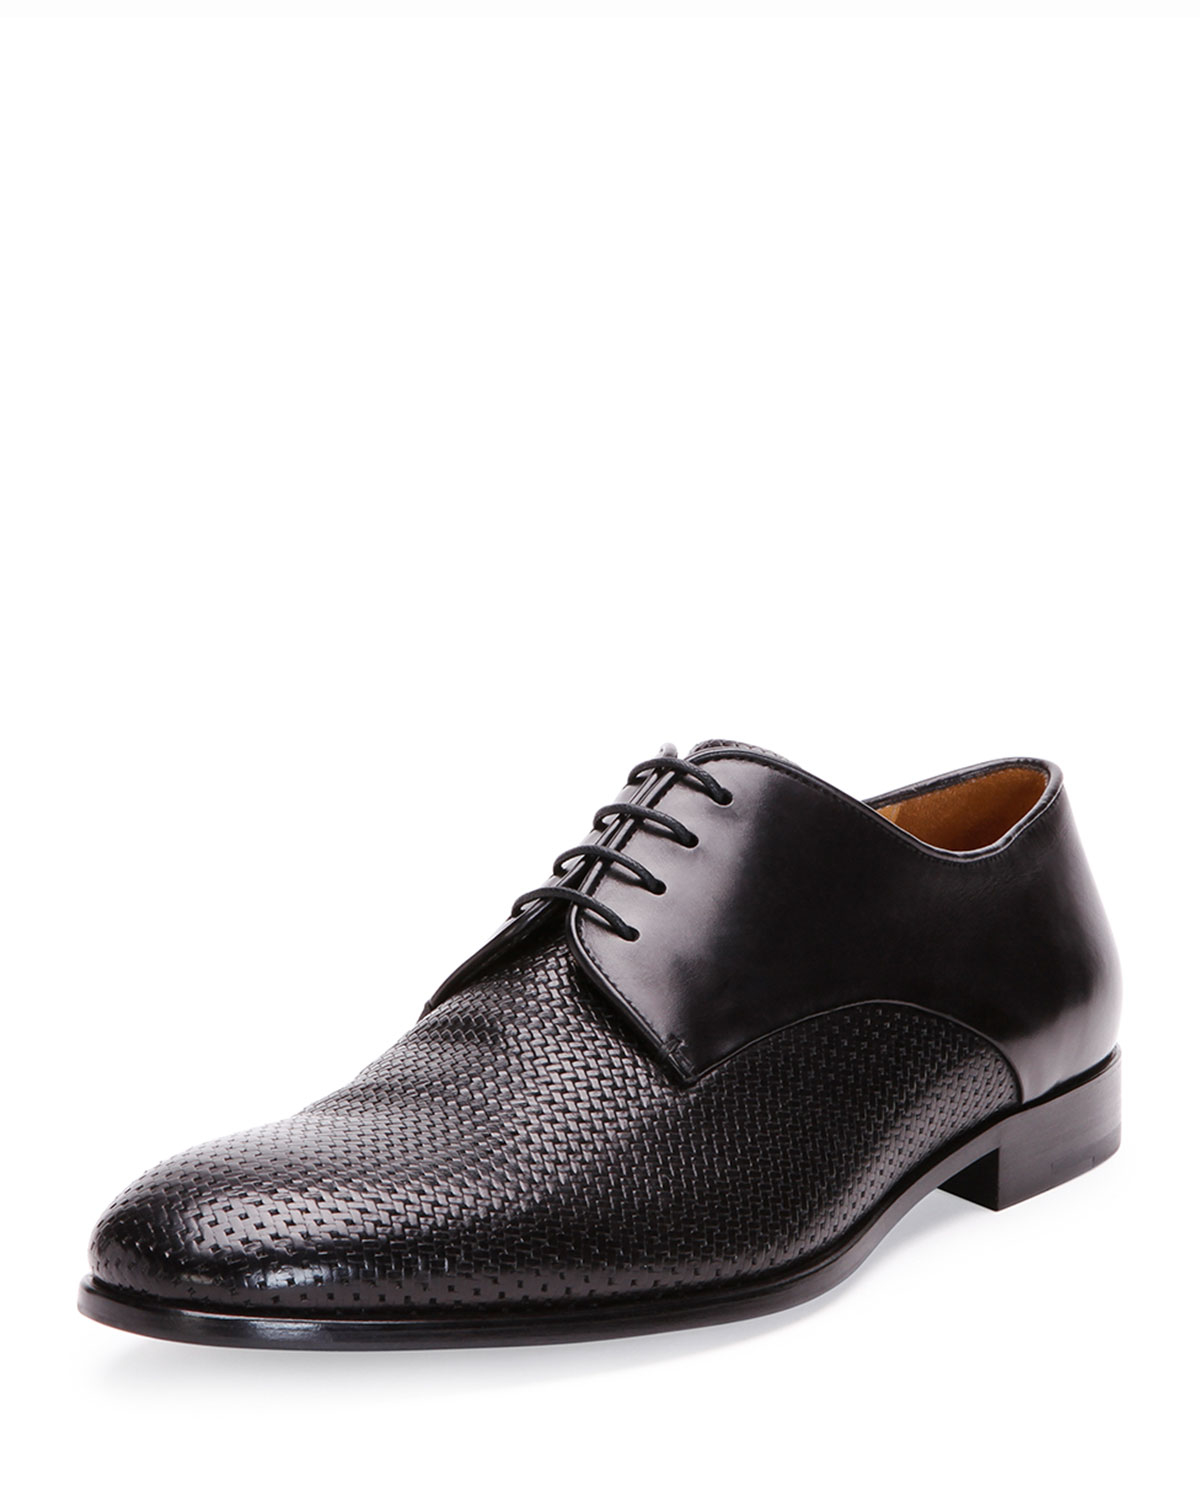 Giorgio armani Woven Leather Dress Shoe for Men | Lyst